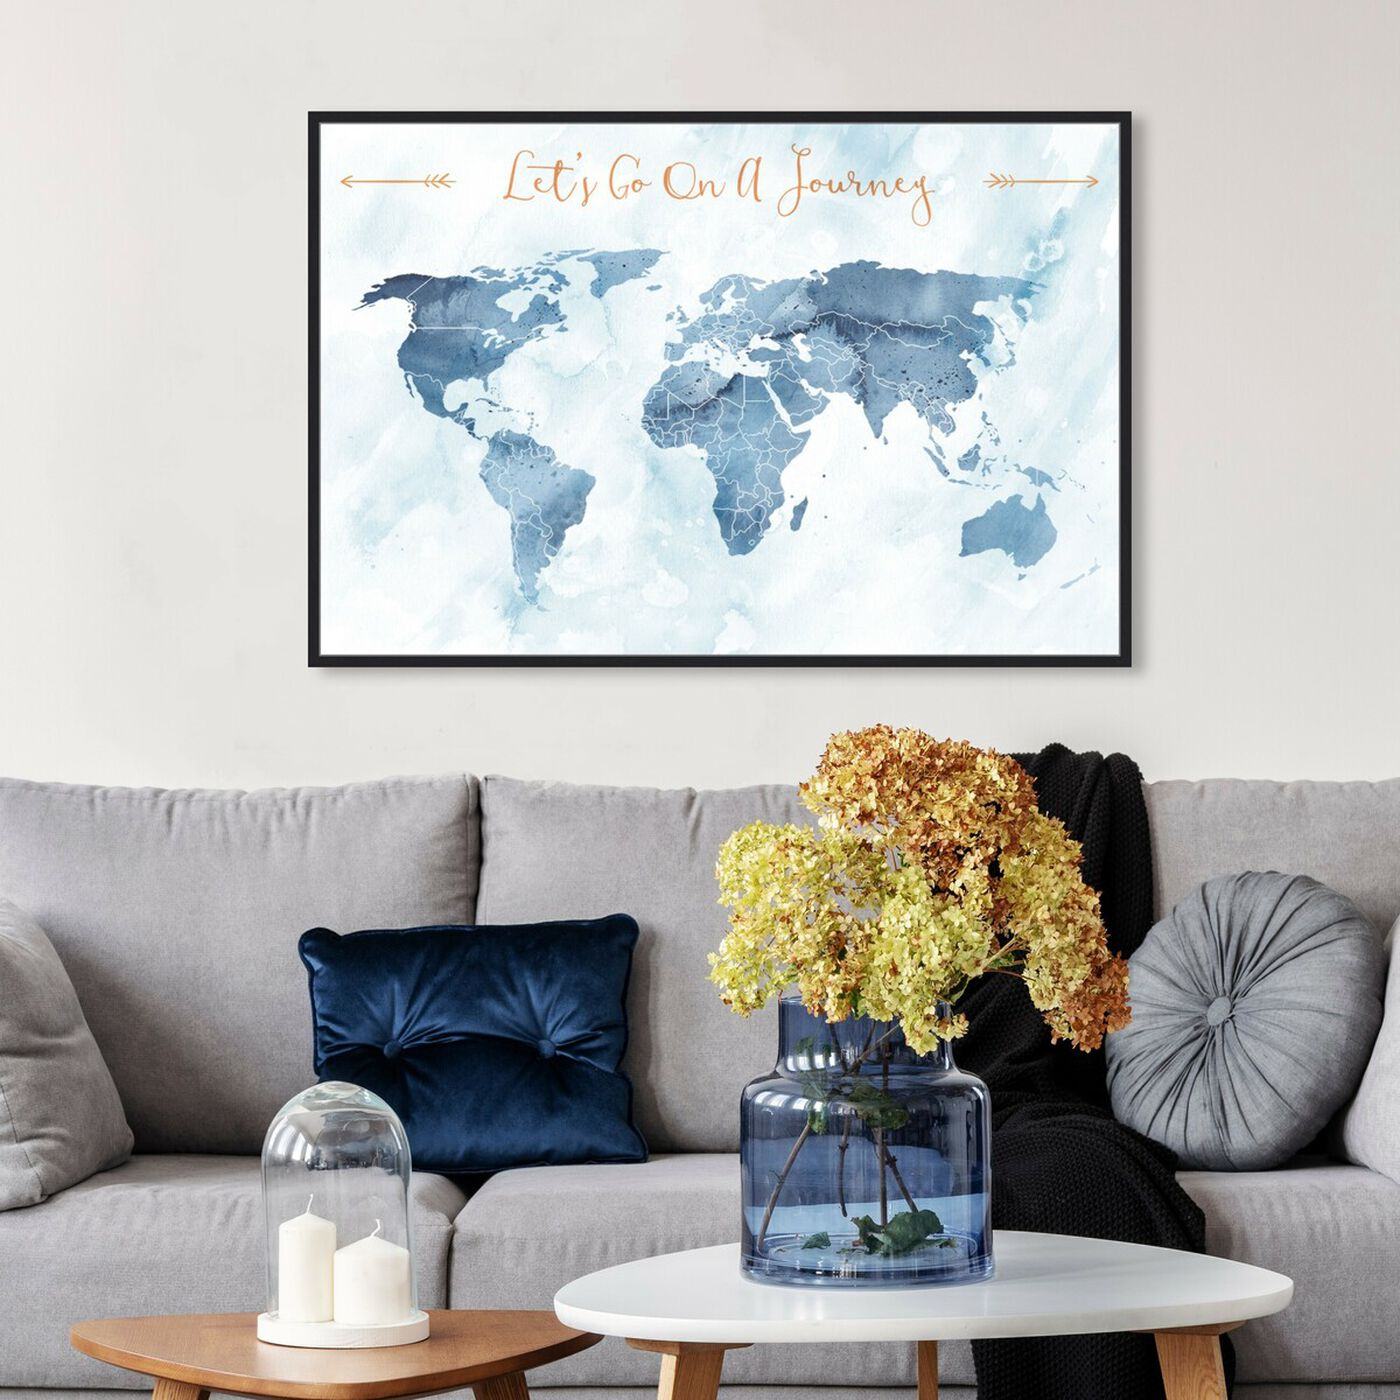 Hanging view of Lets Go On A Journey featuring maps and flags and world maps art.